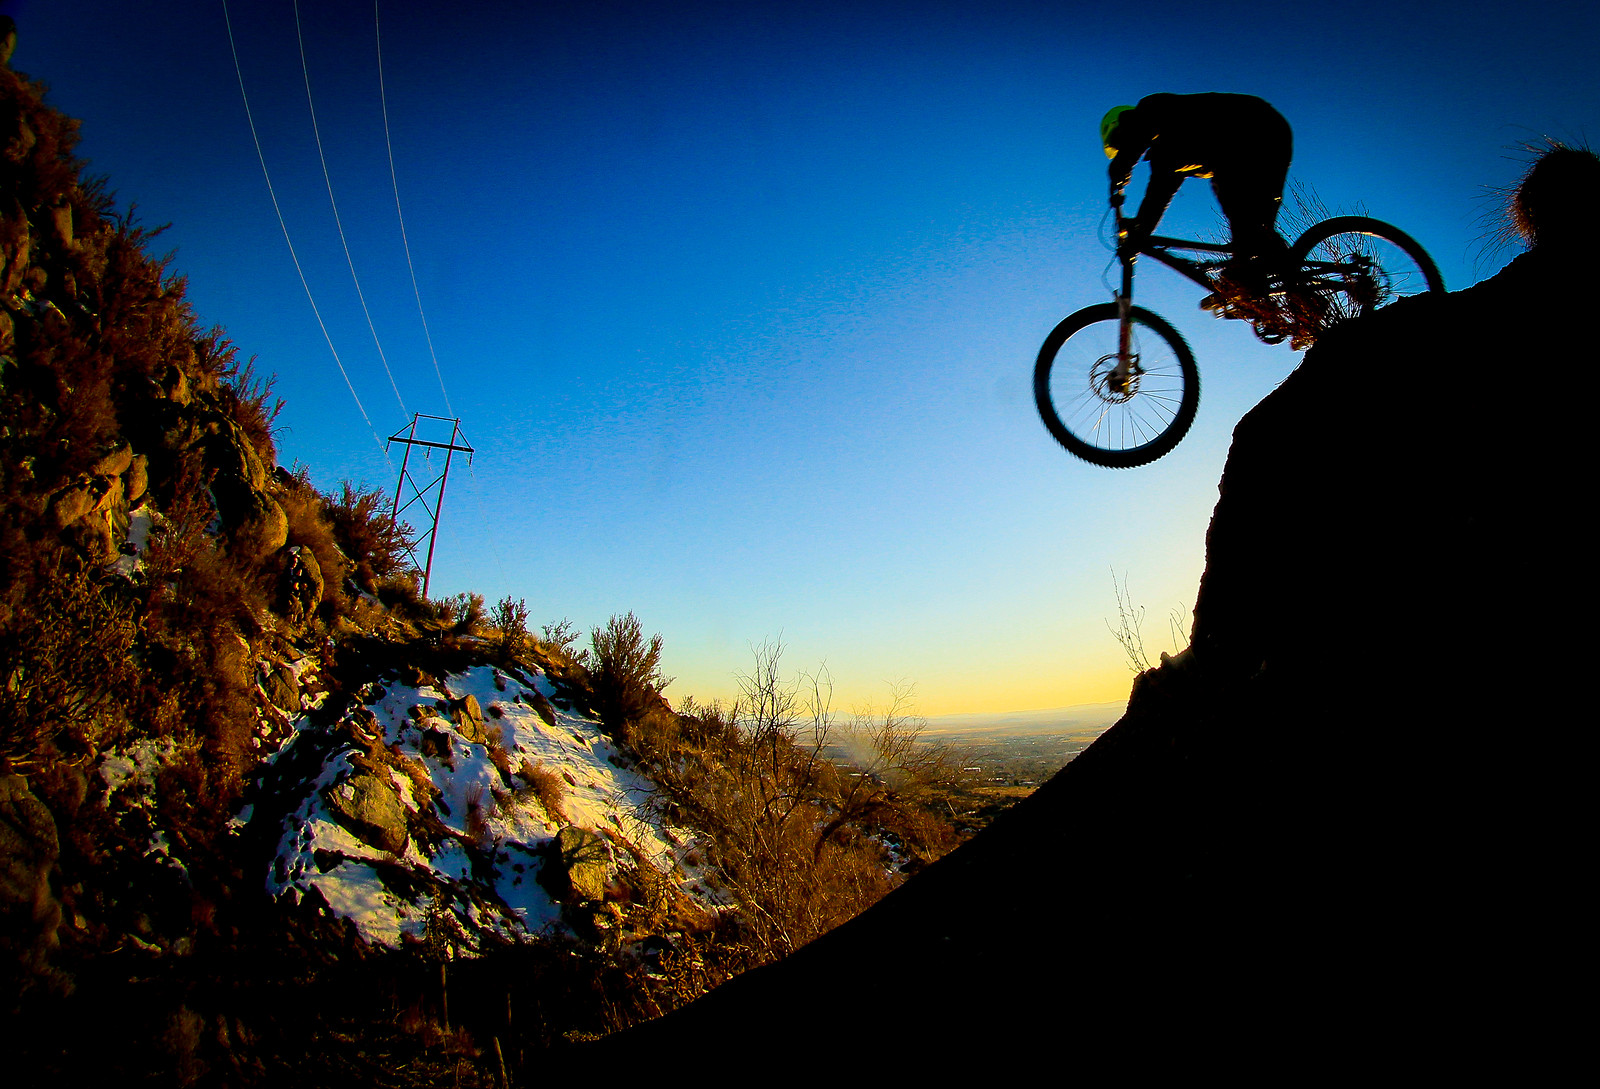 Nothing Drop - edged - jerryhazard - Mountain Biking Pictures - Vital MTB